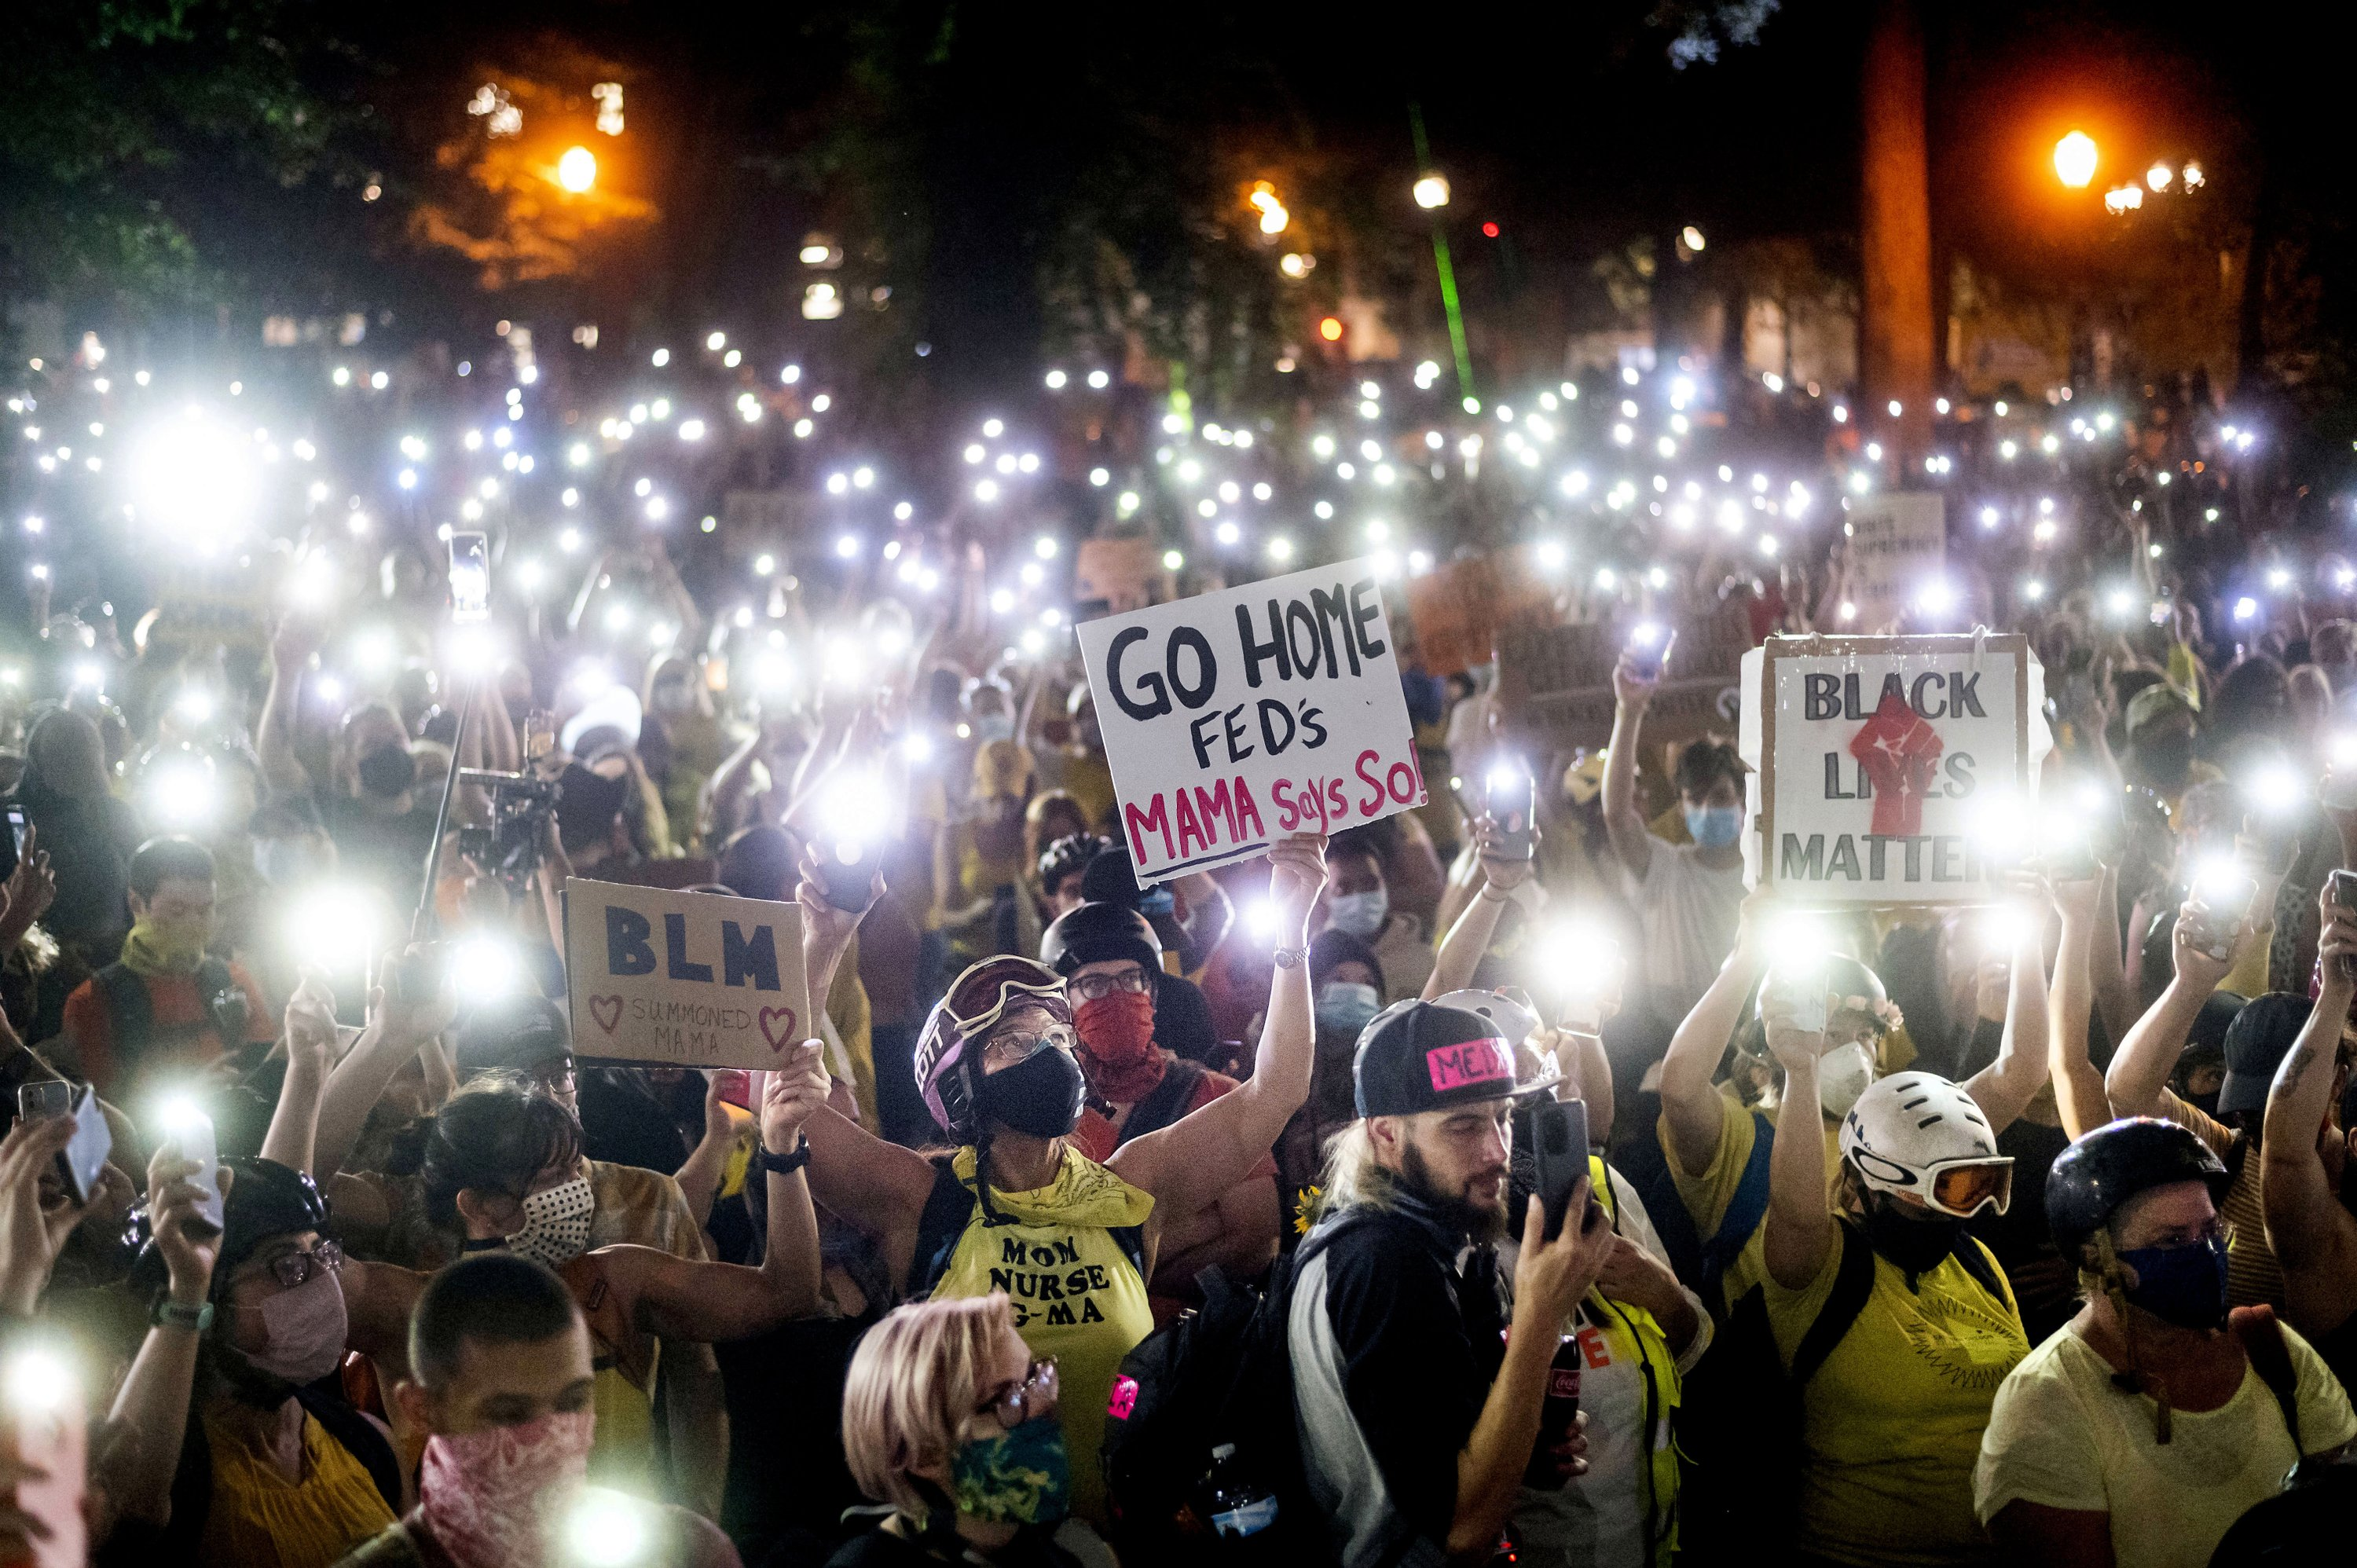 Facing federal agents, Portland protests find new momentum